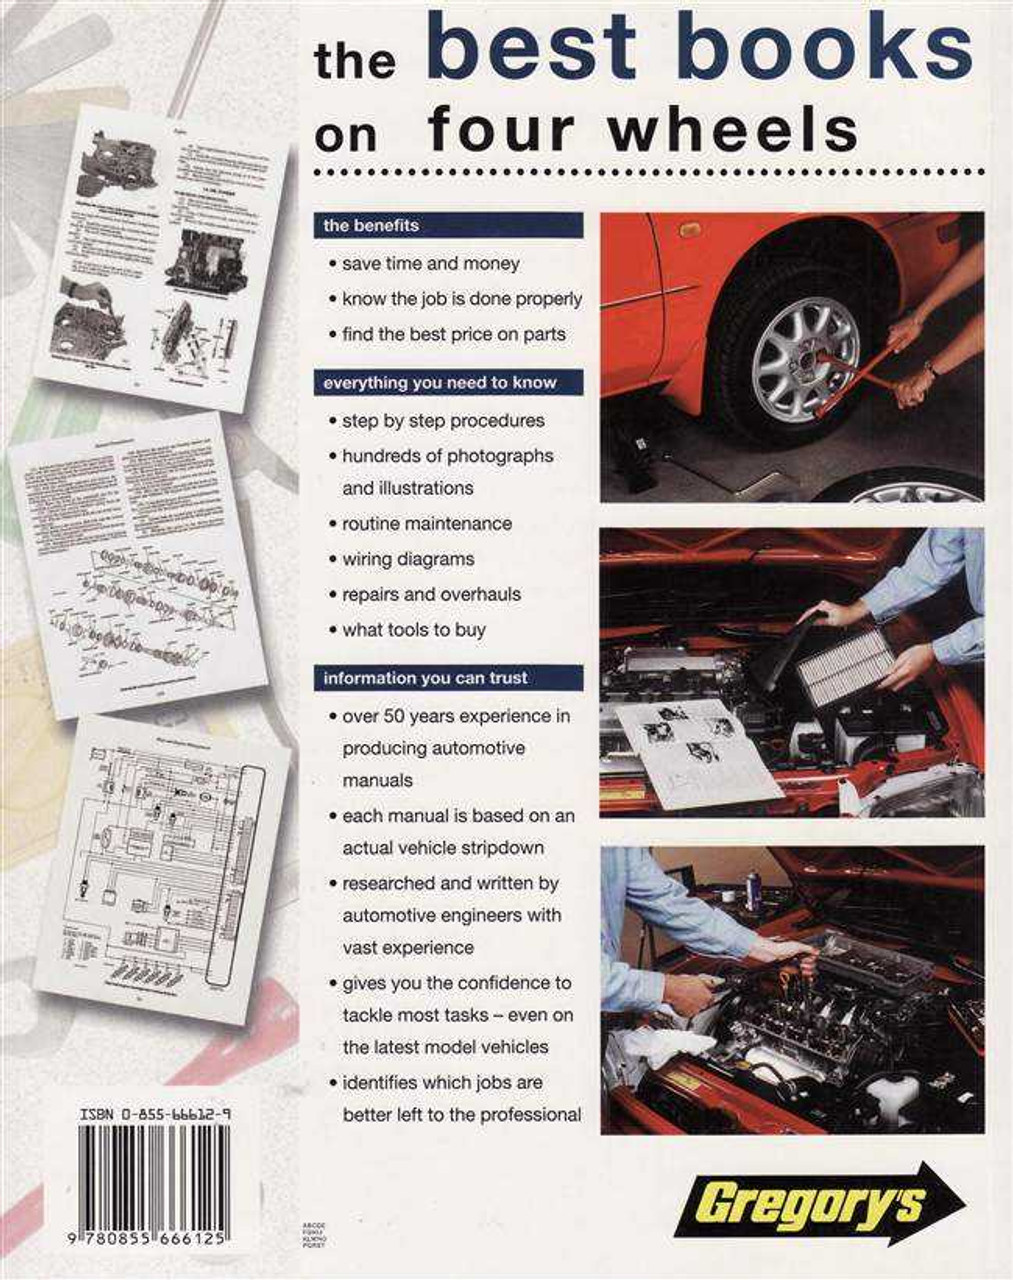 Mitsubishi Express L300 1980 - 1986 Workshop Manual on